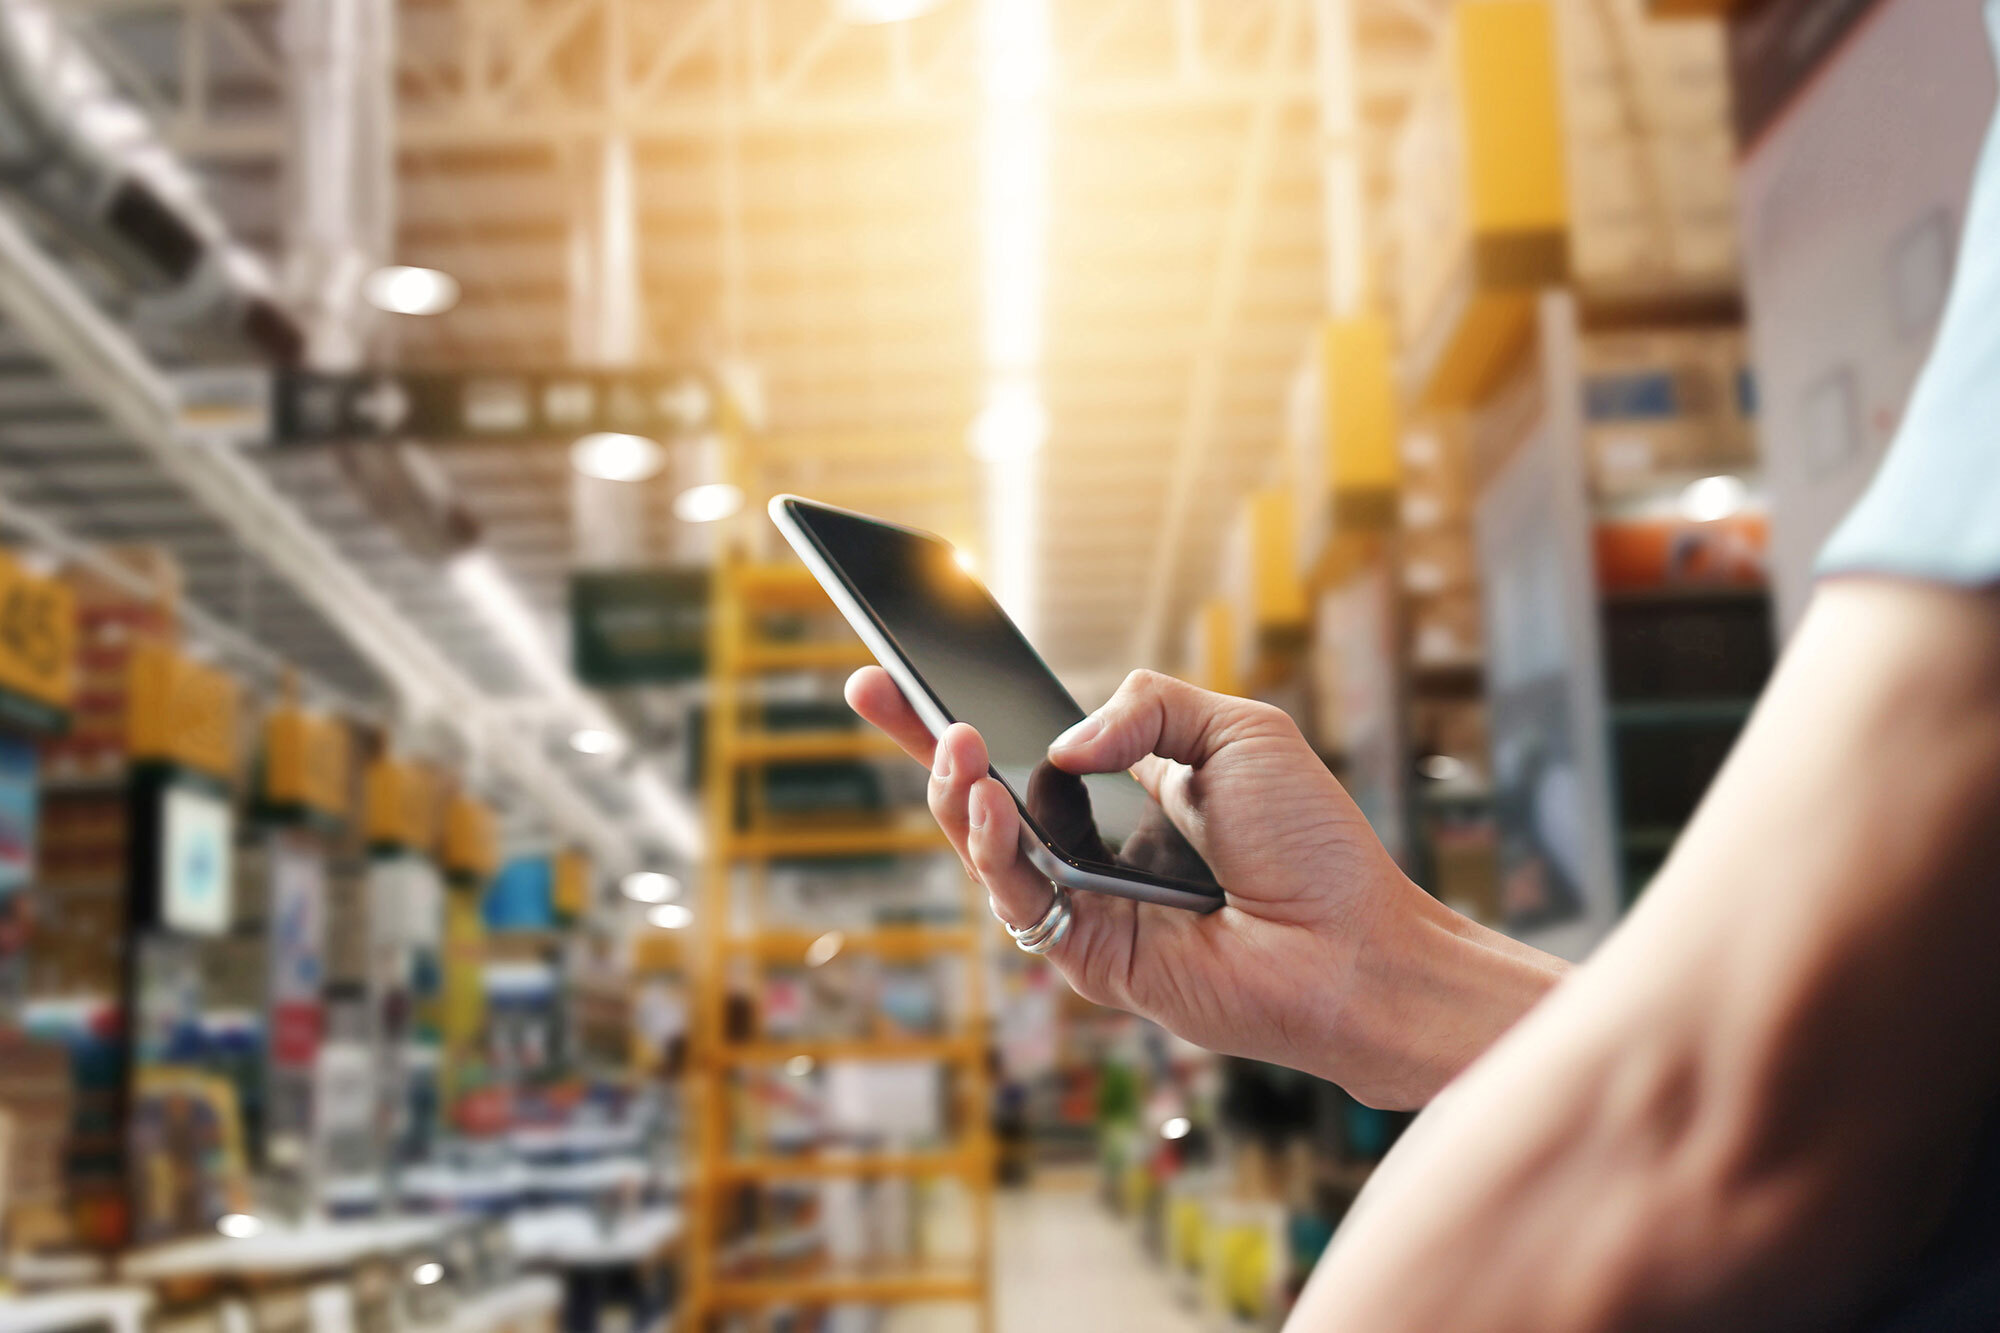 person holding cellphone in fulfillment warehouse